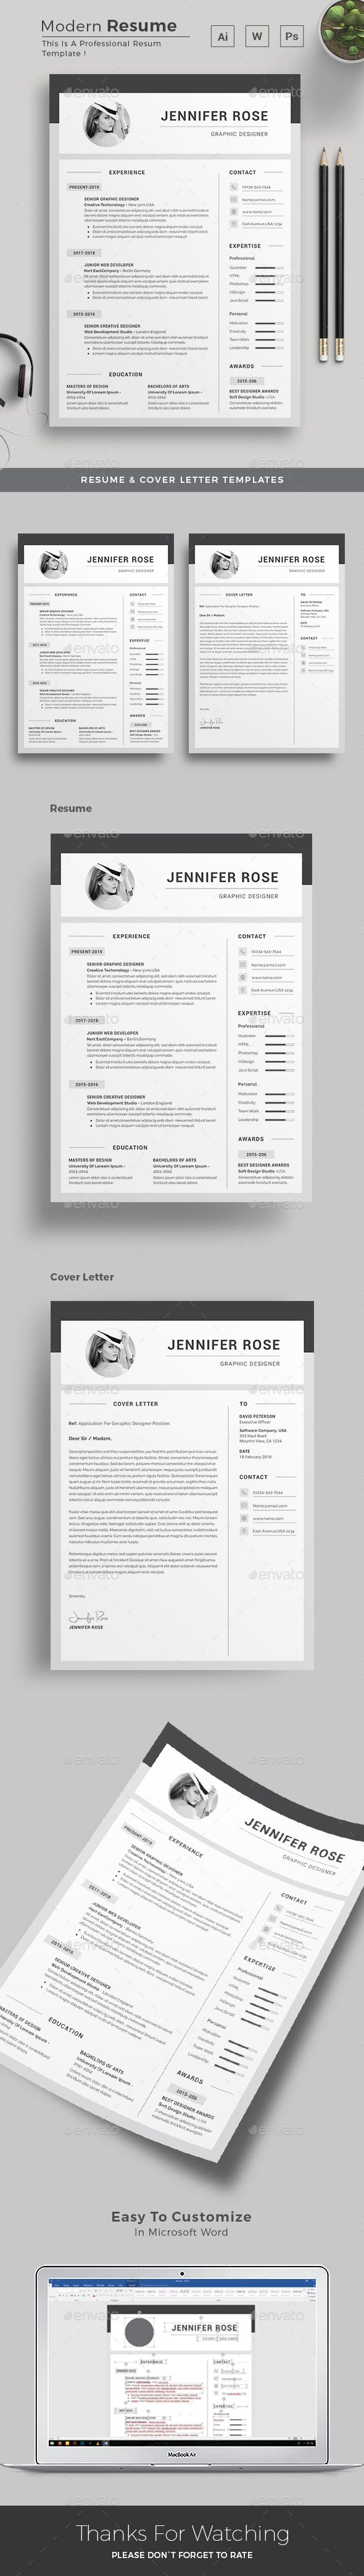 Resume  Word Design Template And Resume Ideas